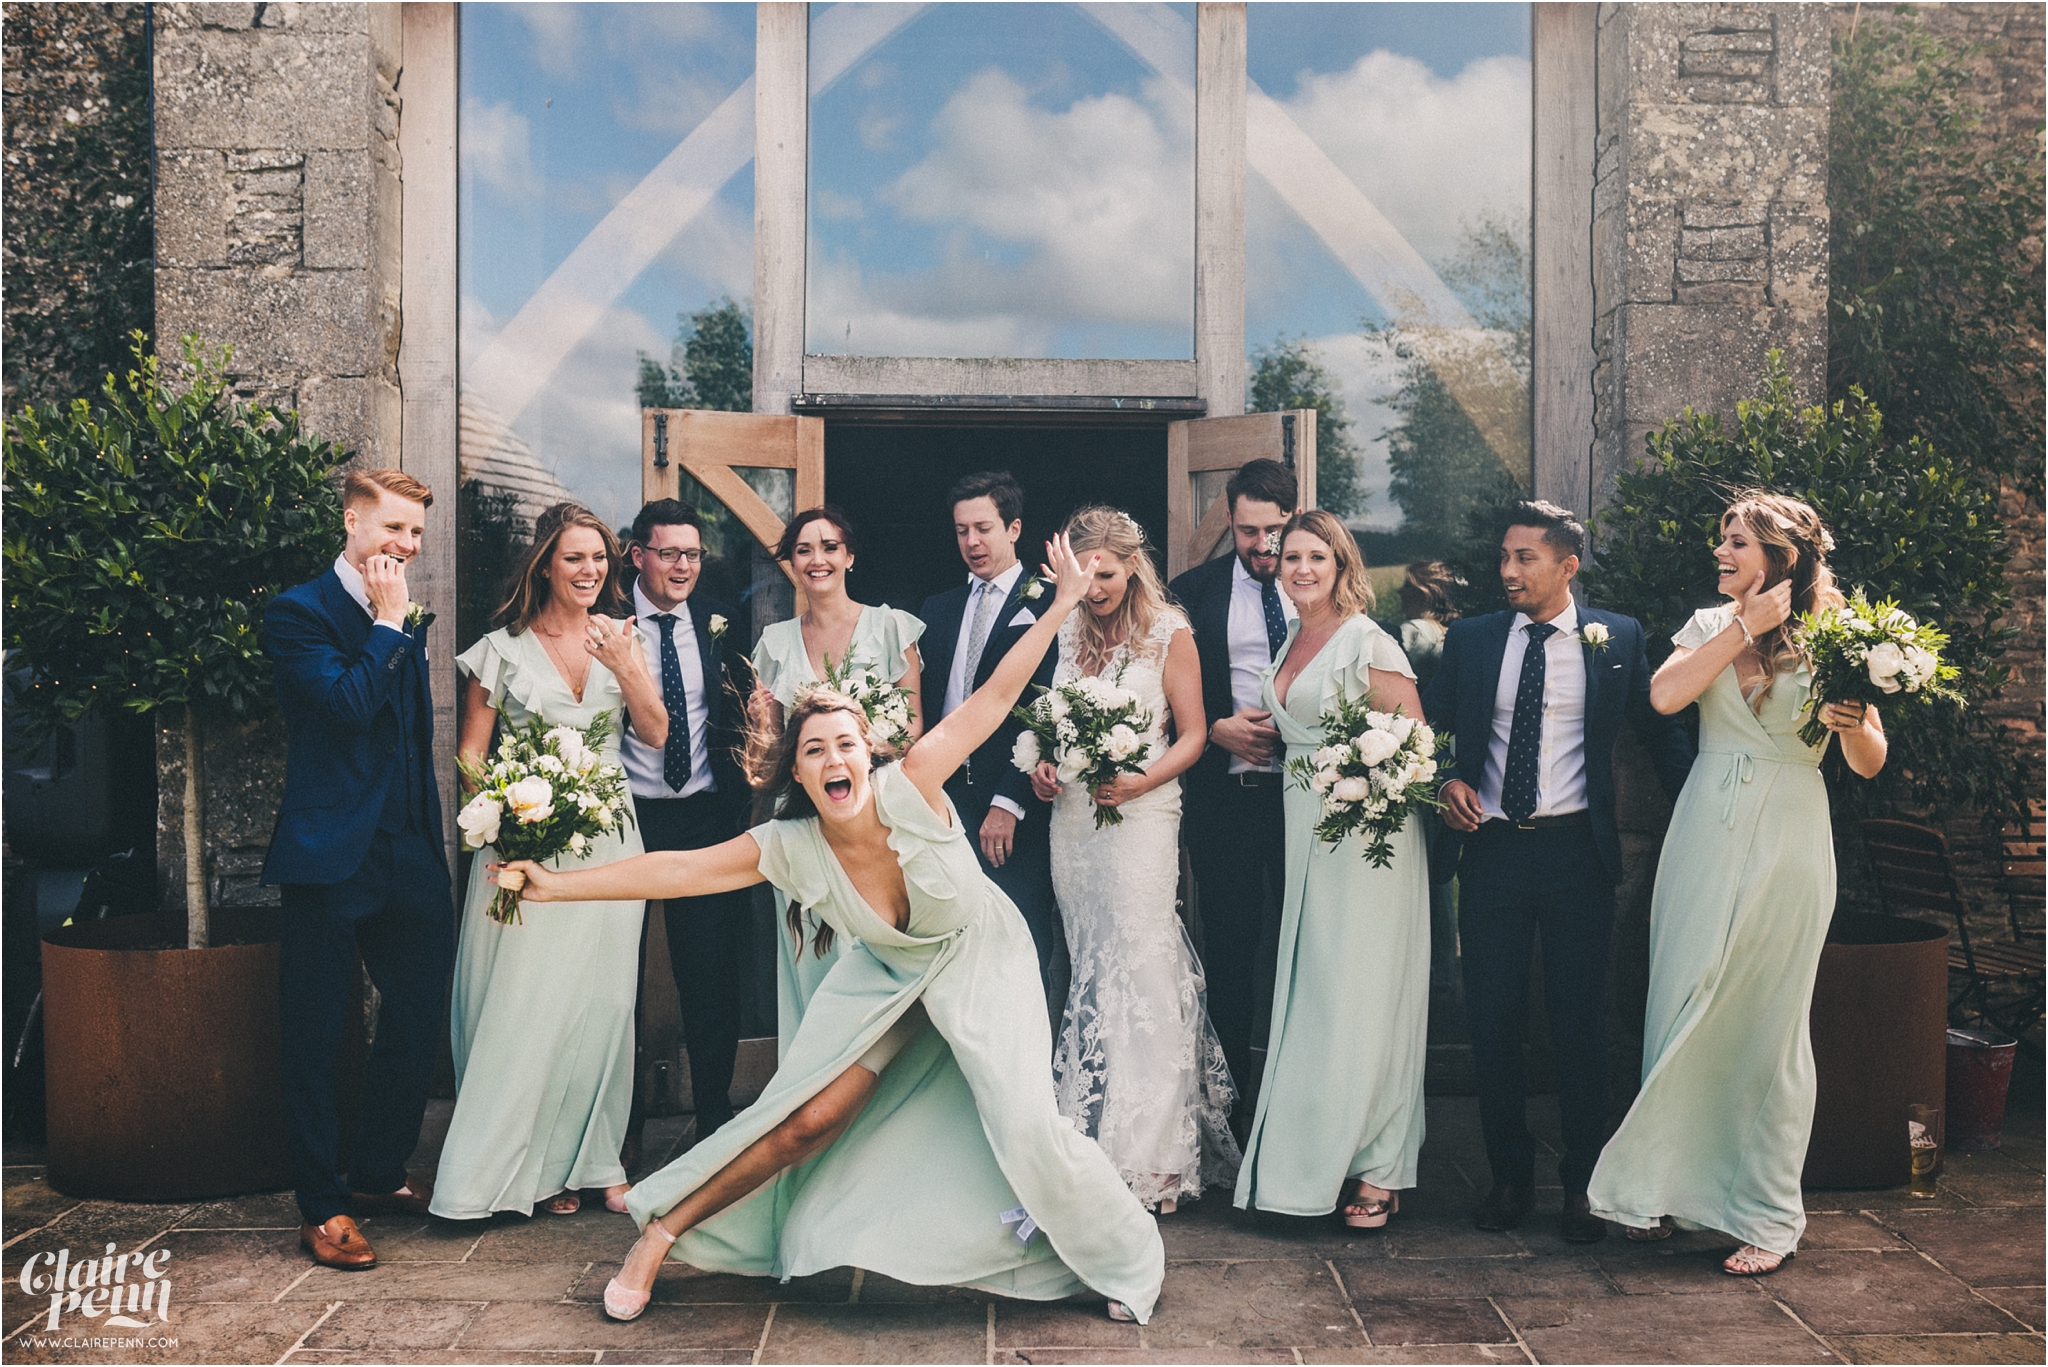 Cripps Stone Barn wedding Cheltenham Cotswolds_0024.jpg